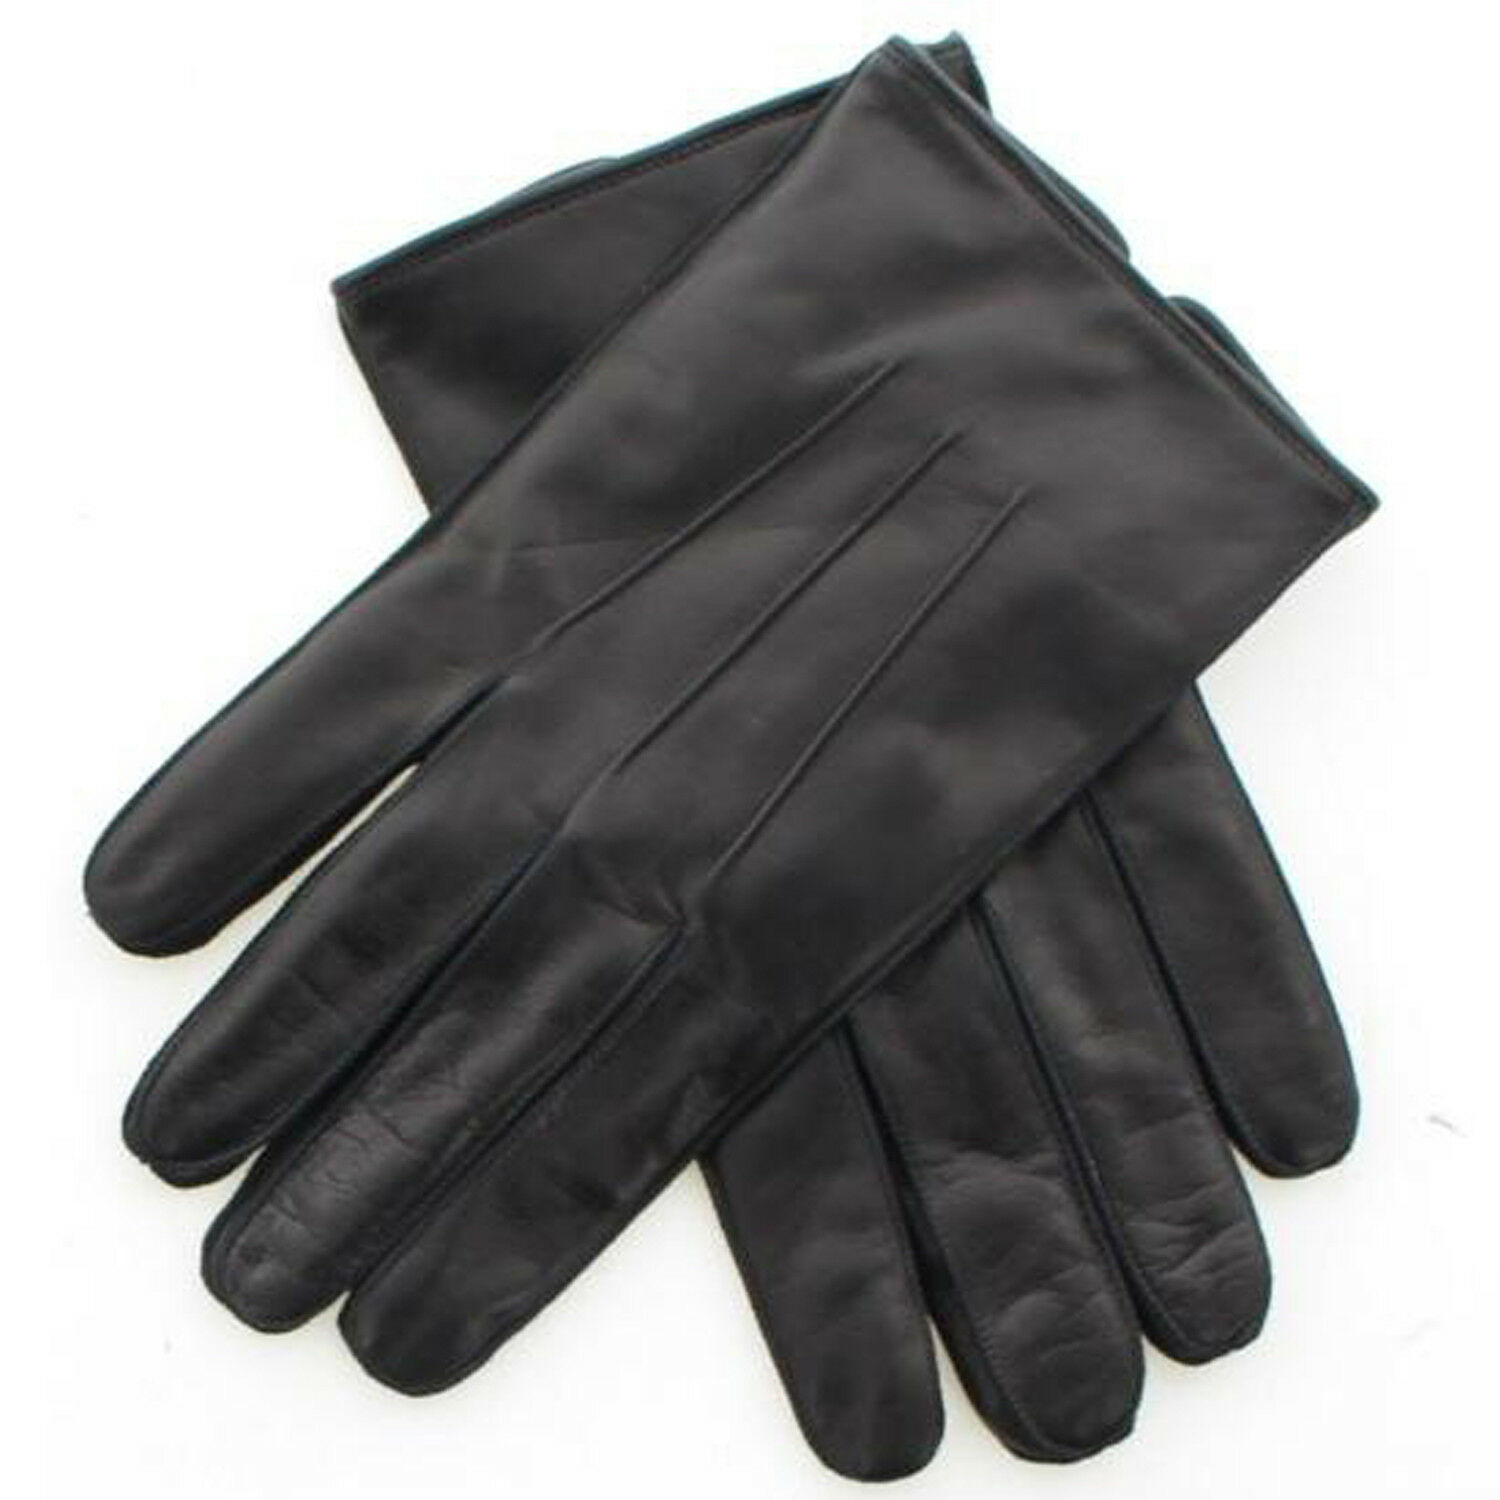 d05ea7ebe0e3d Coach 82863 Men's Nappa Leather Basic Winter Driving Gloves, Cashmere Lined  $128 for sale online